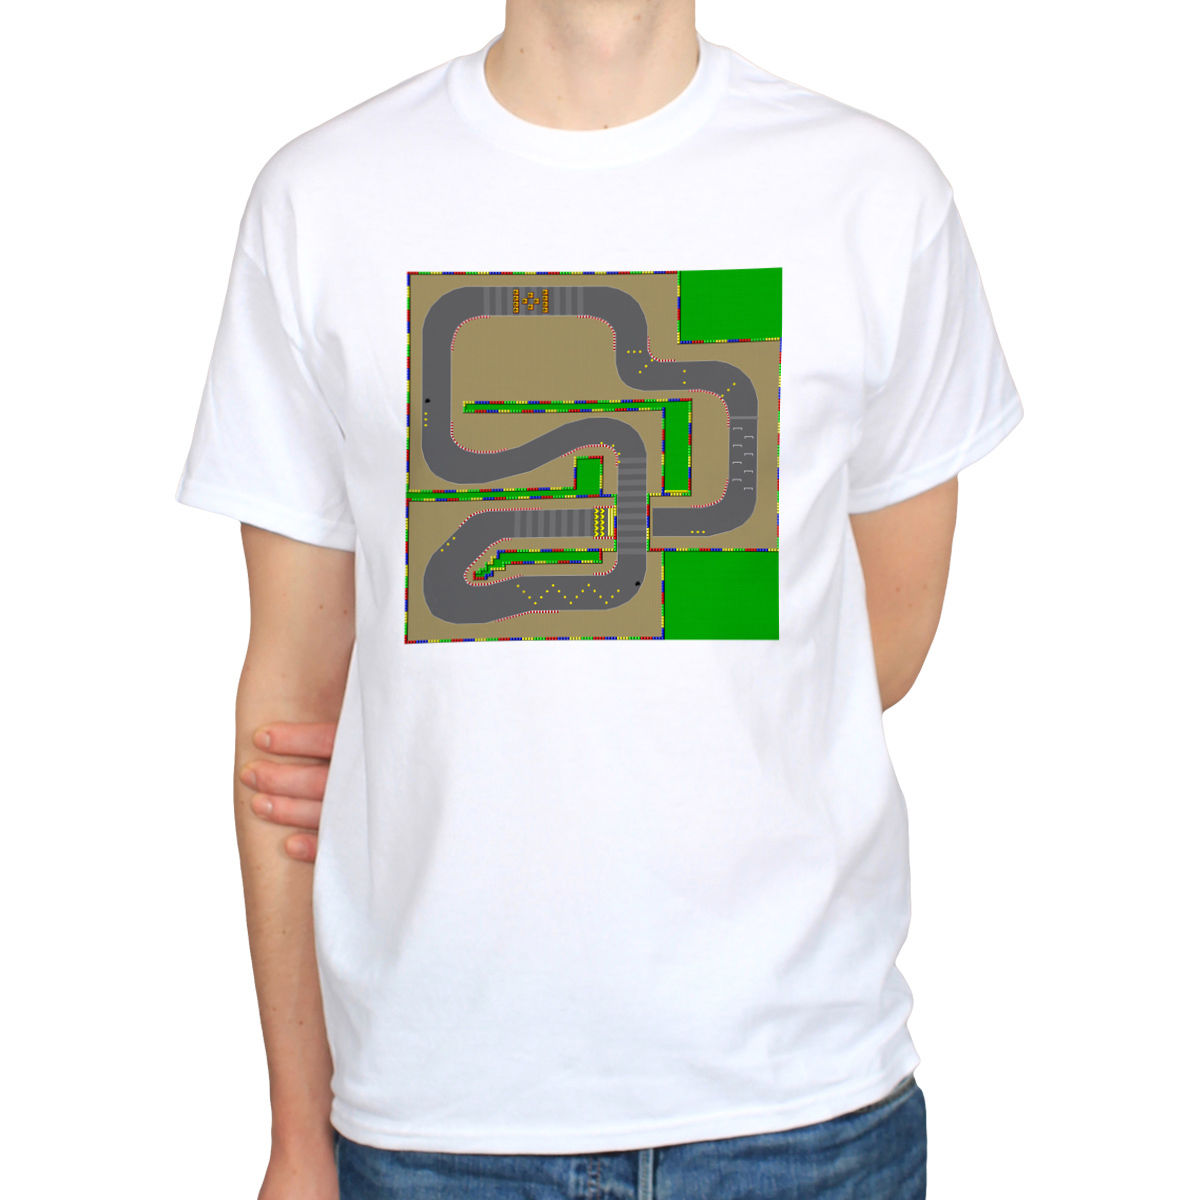 Super Mario Kart Track Retro Racing NES SNES Gaming Map White T-Shirt Male Best Selling T Shirts